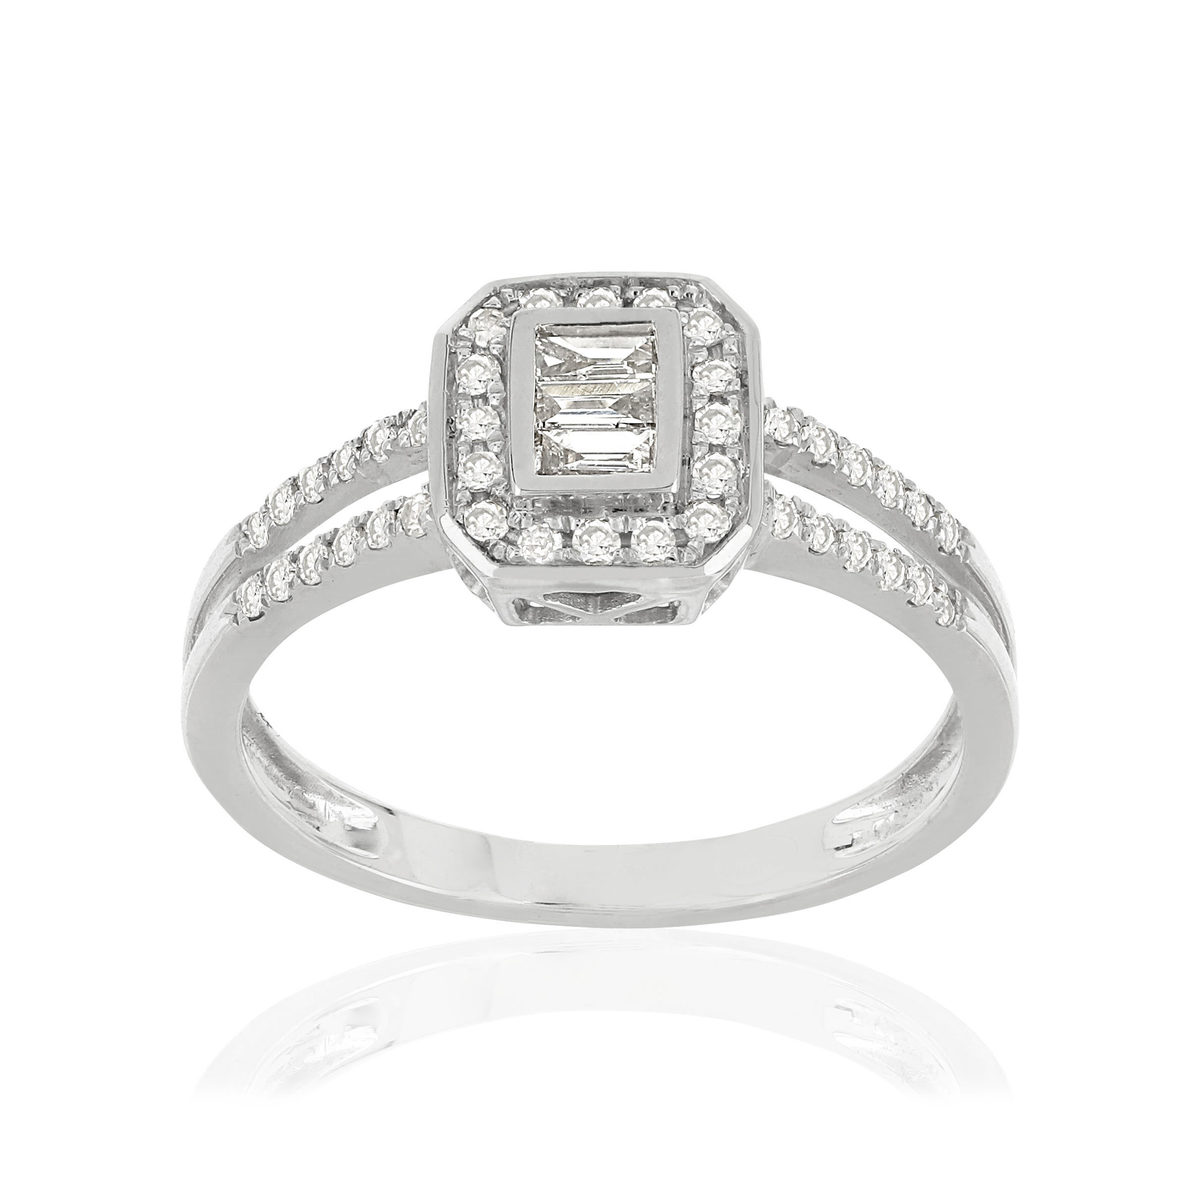 Bague MATY Or 750 blanc Diamants - vue 1